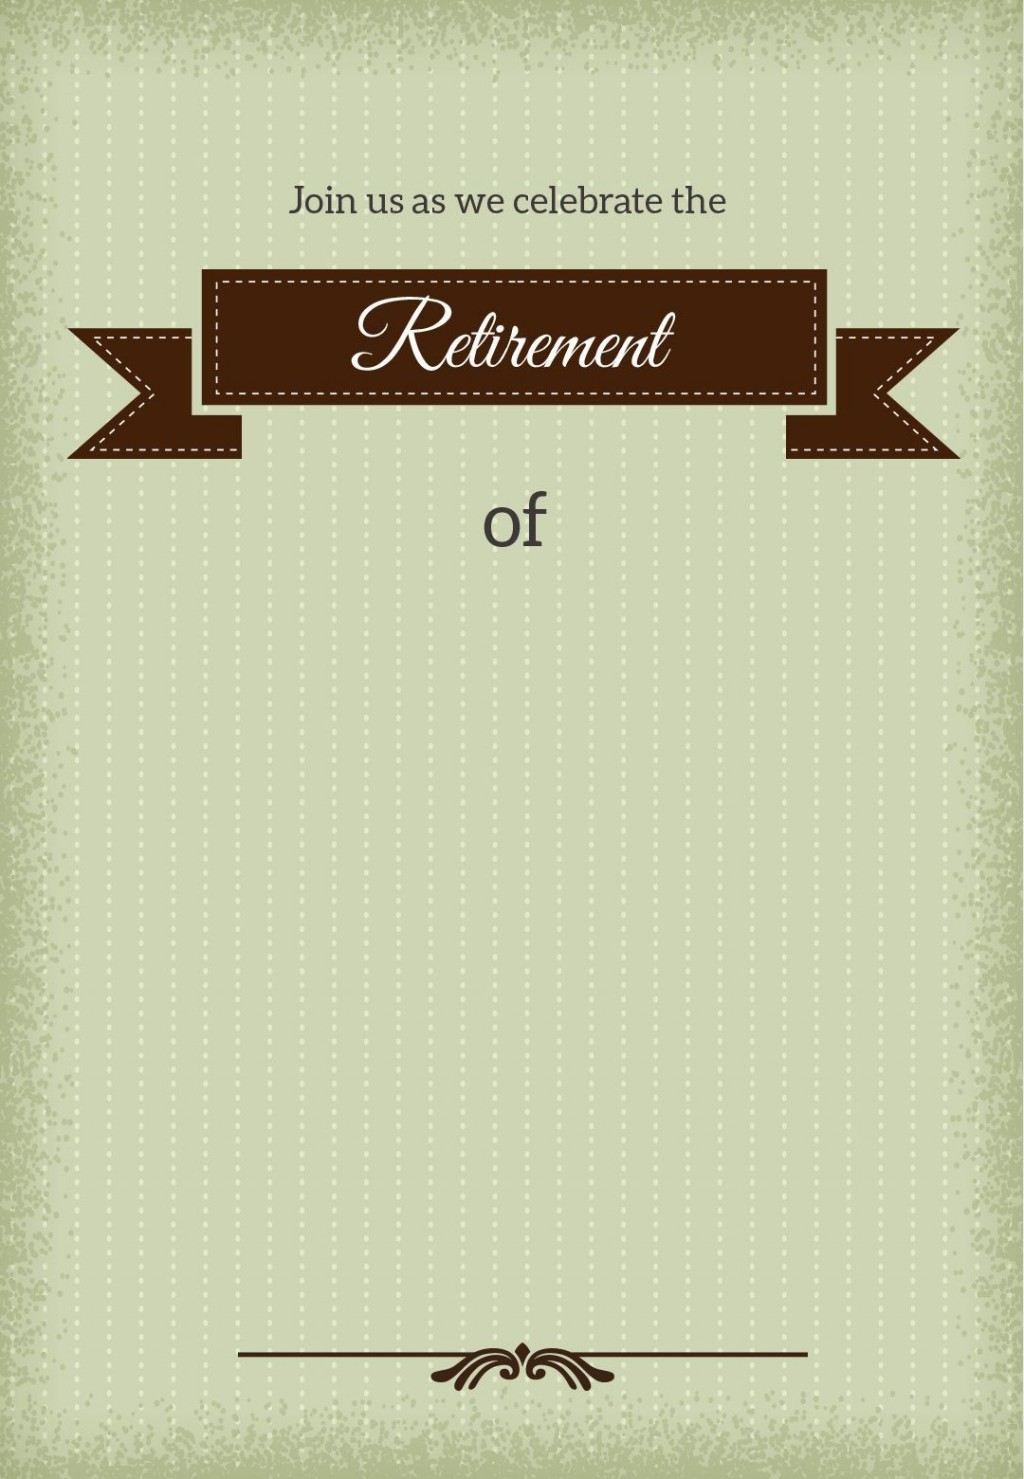 001 Stirring Retirement Invitation Template Free Idea  Party Printable For WordLarge